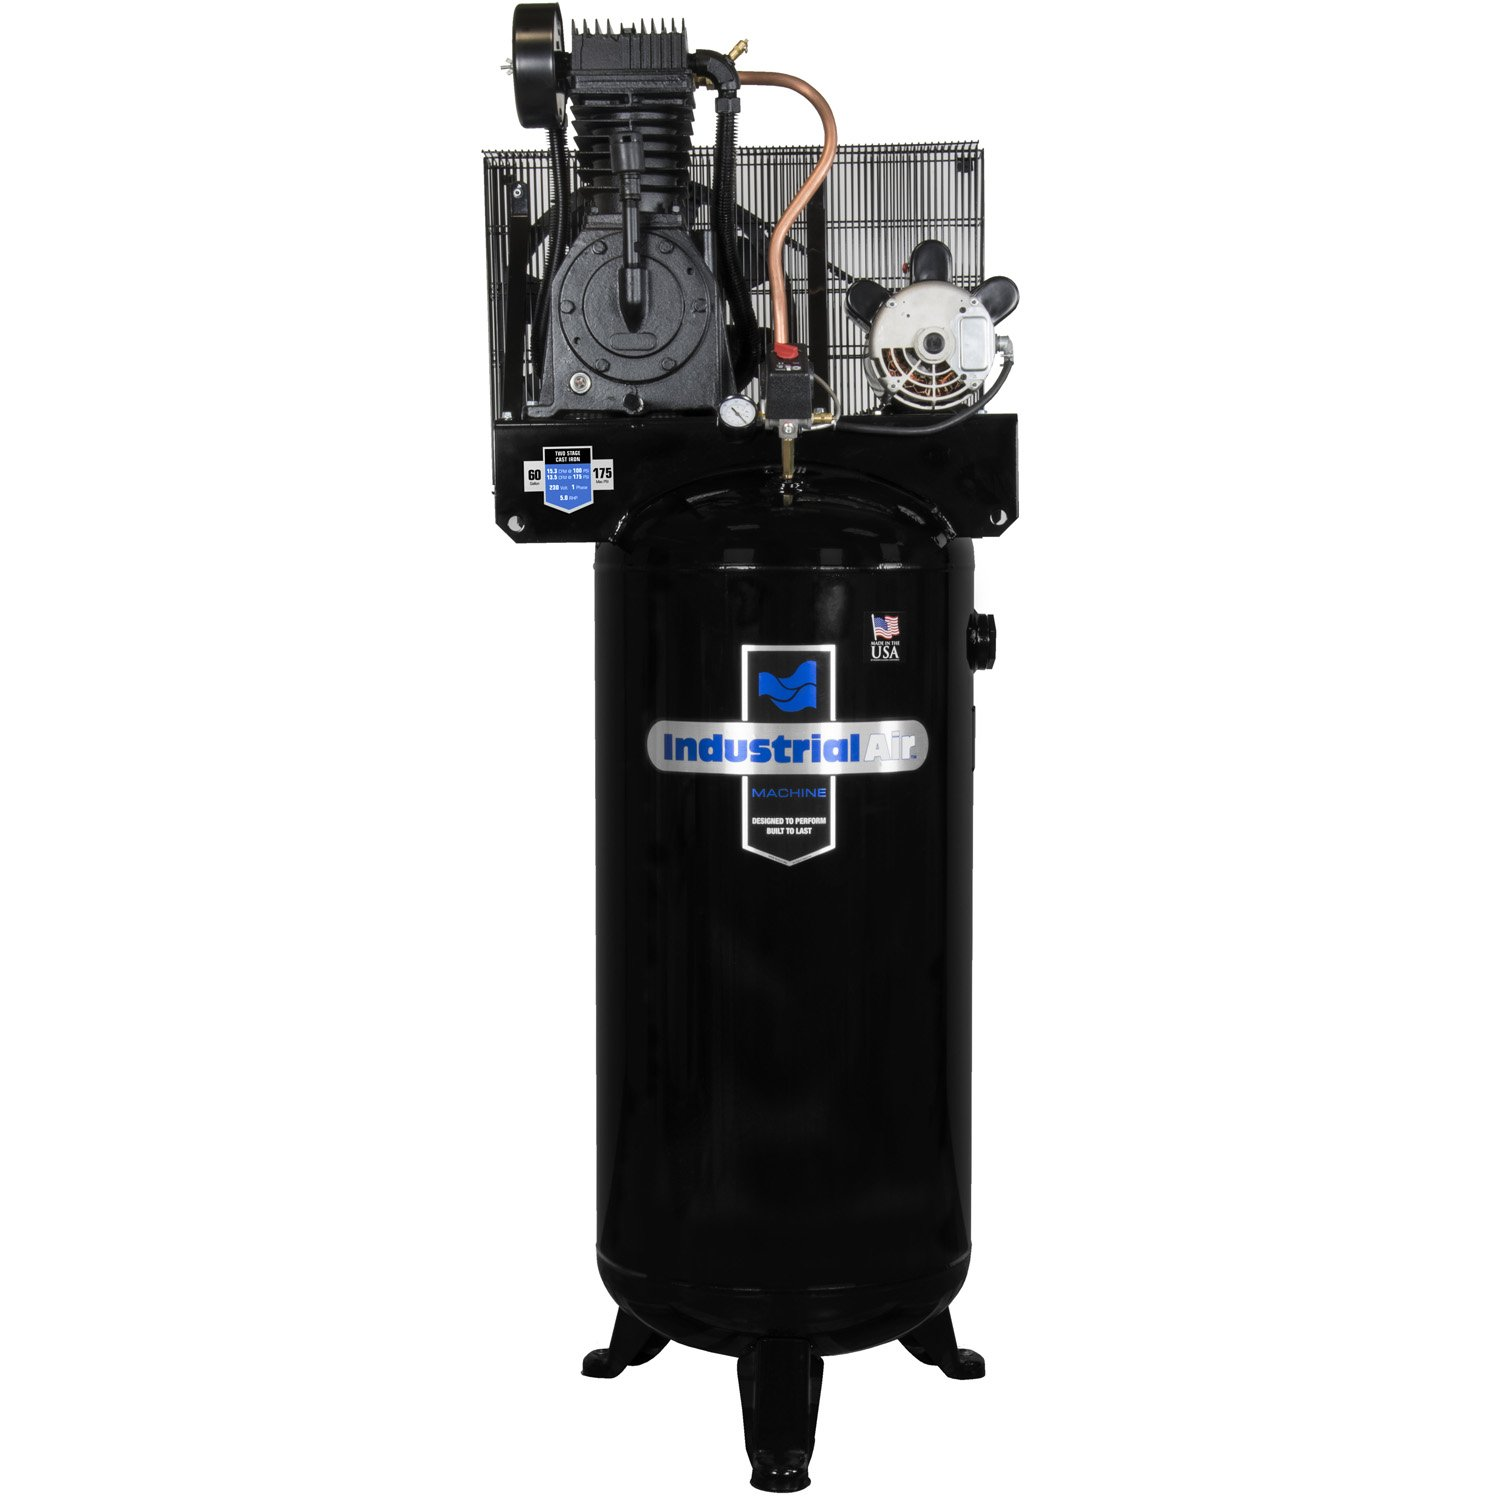 Amazon.com: Industrial Air IV5076055 60 gallon 5 hp Two Stage Air Compressor: Home Improvement